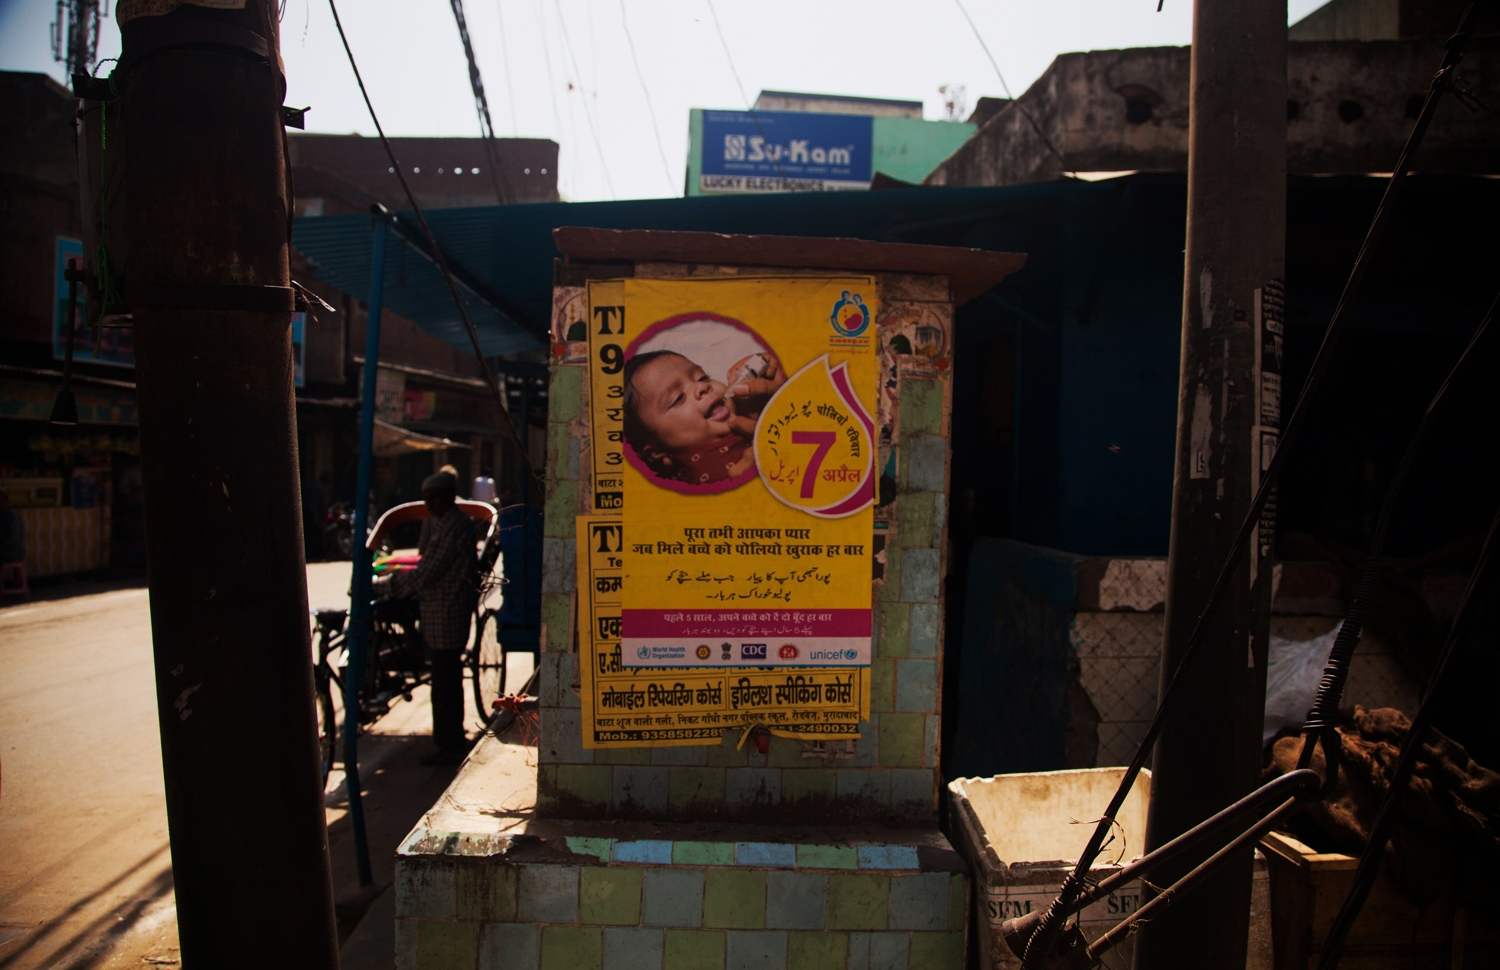 A polio vaccination sign in a street in Moradabad, India.